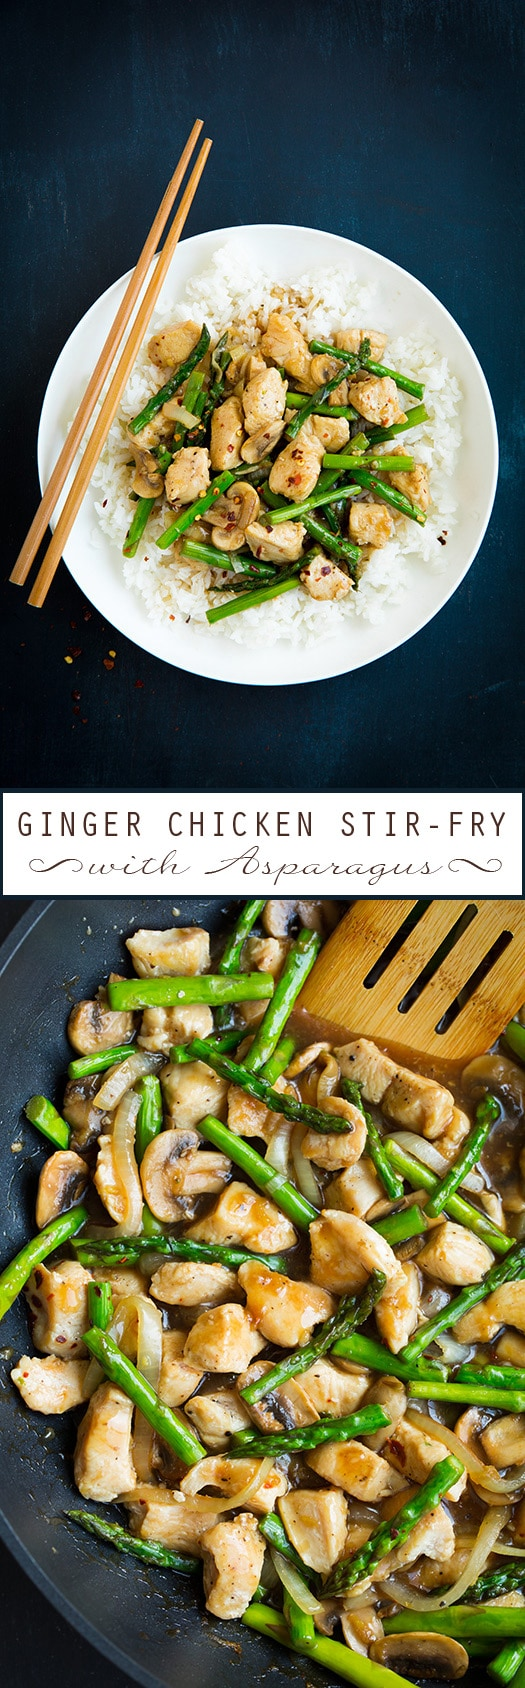 Ginger Asparagus Chicken Stir Fry Recipe